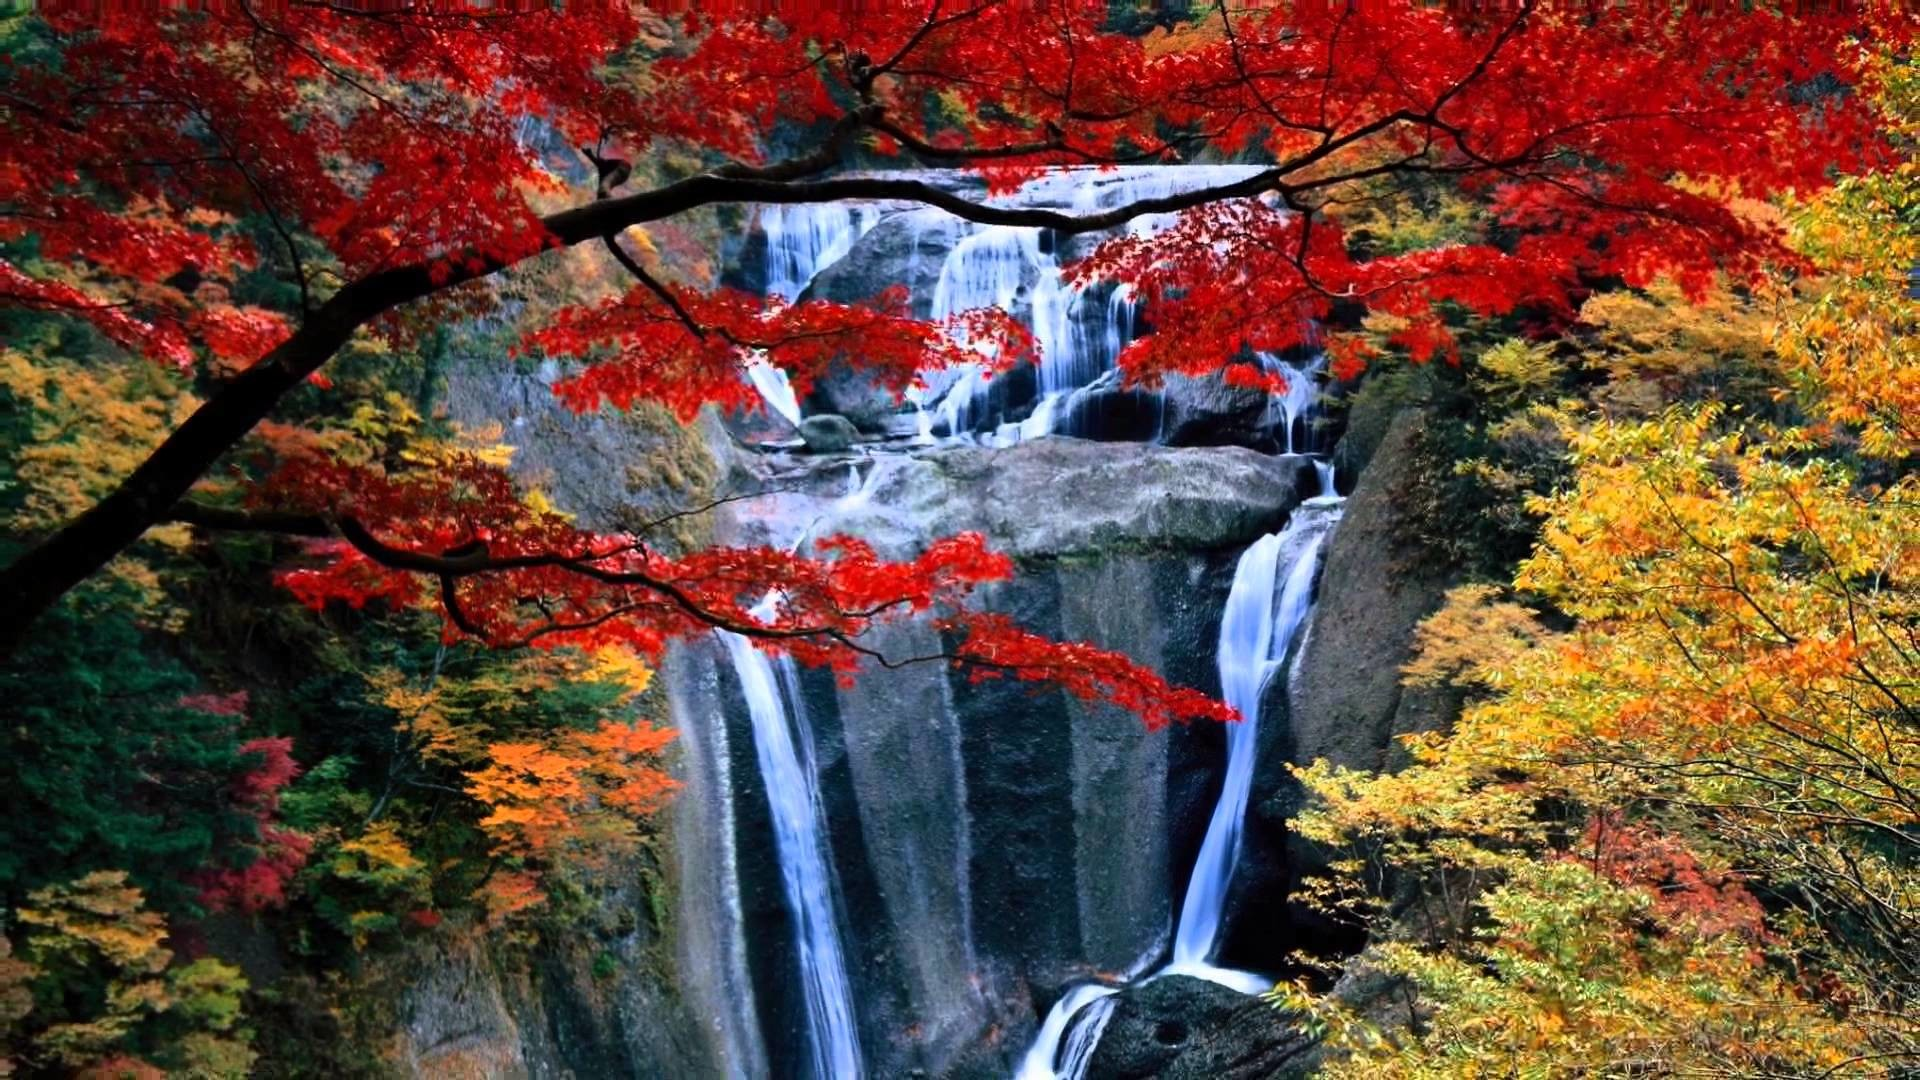 Earth 3d Live Wallpaper Mac Waterfall Wallpapers And Screensavers 57 Images